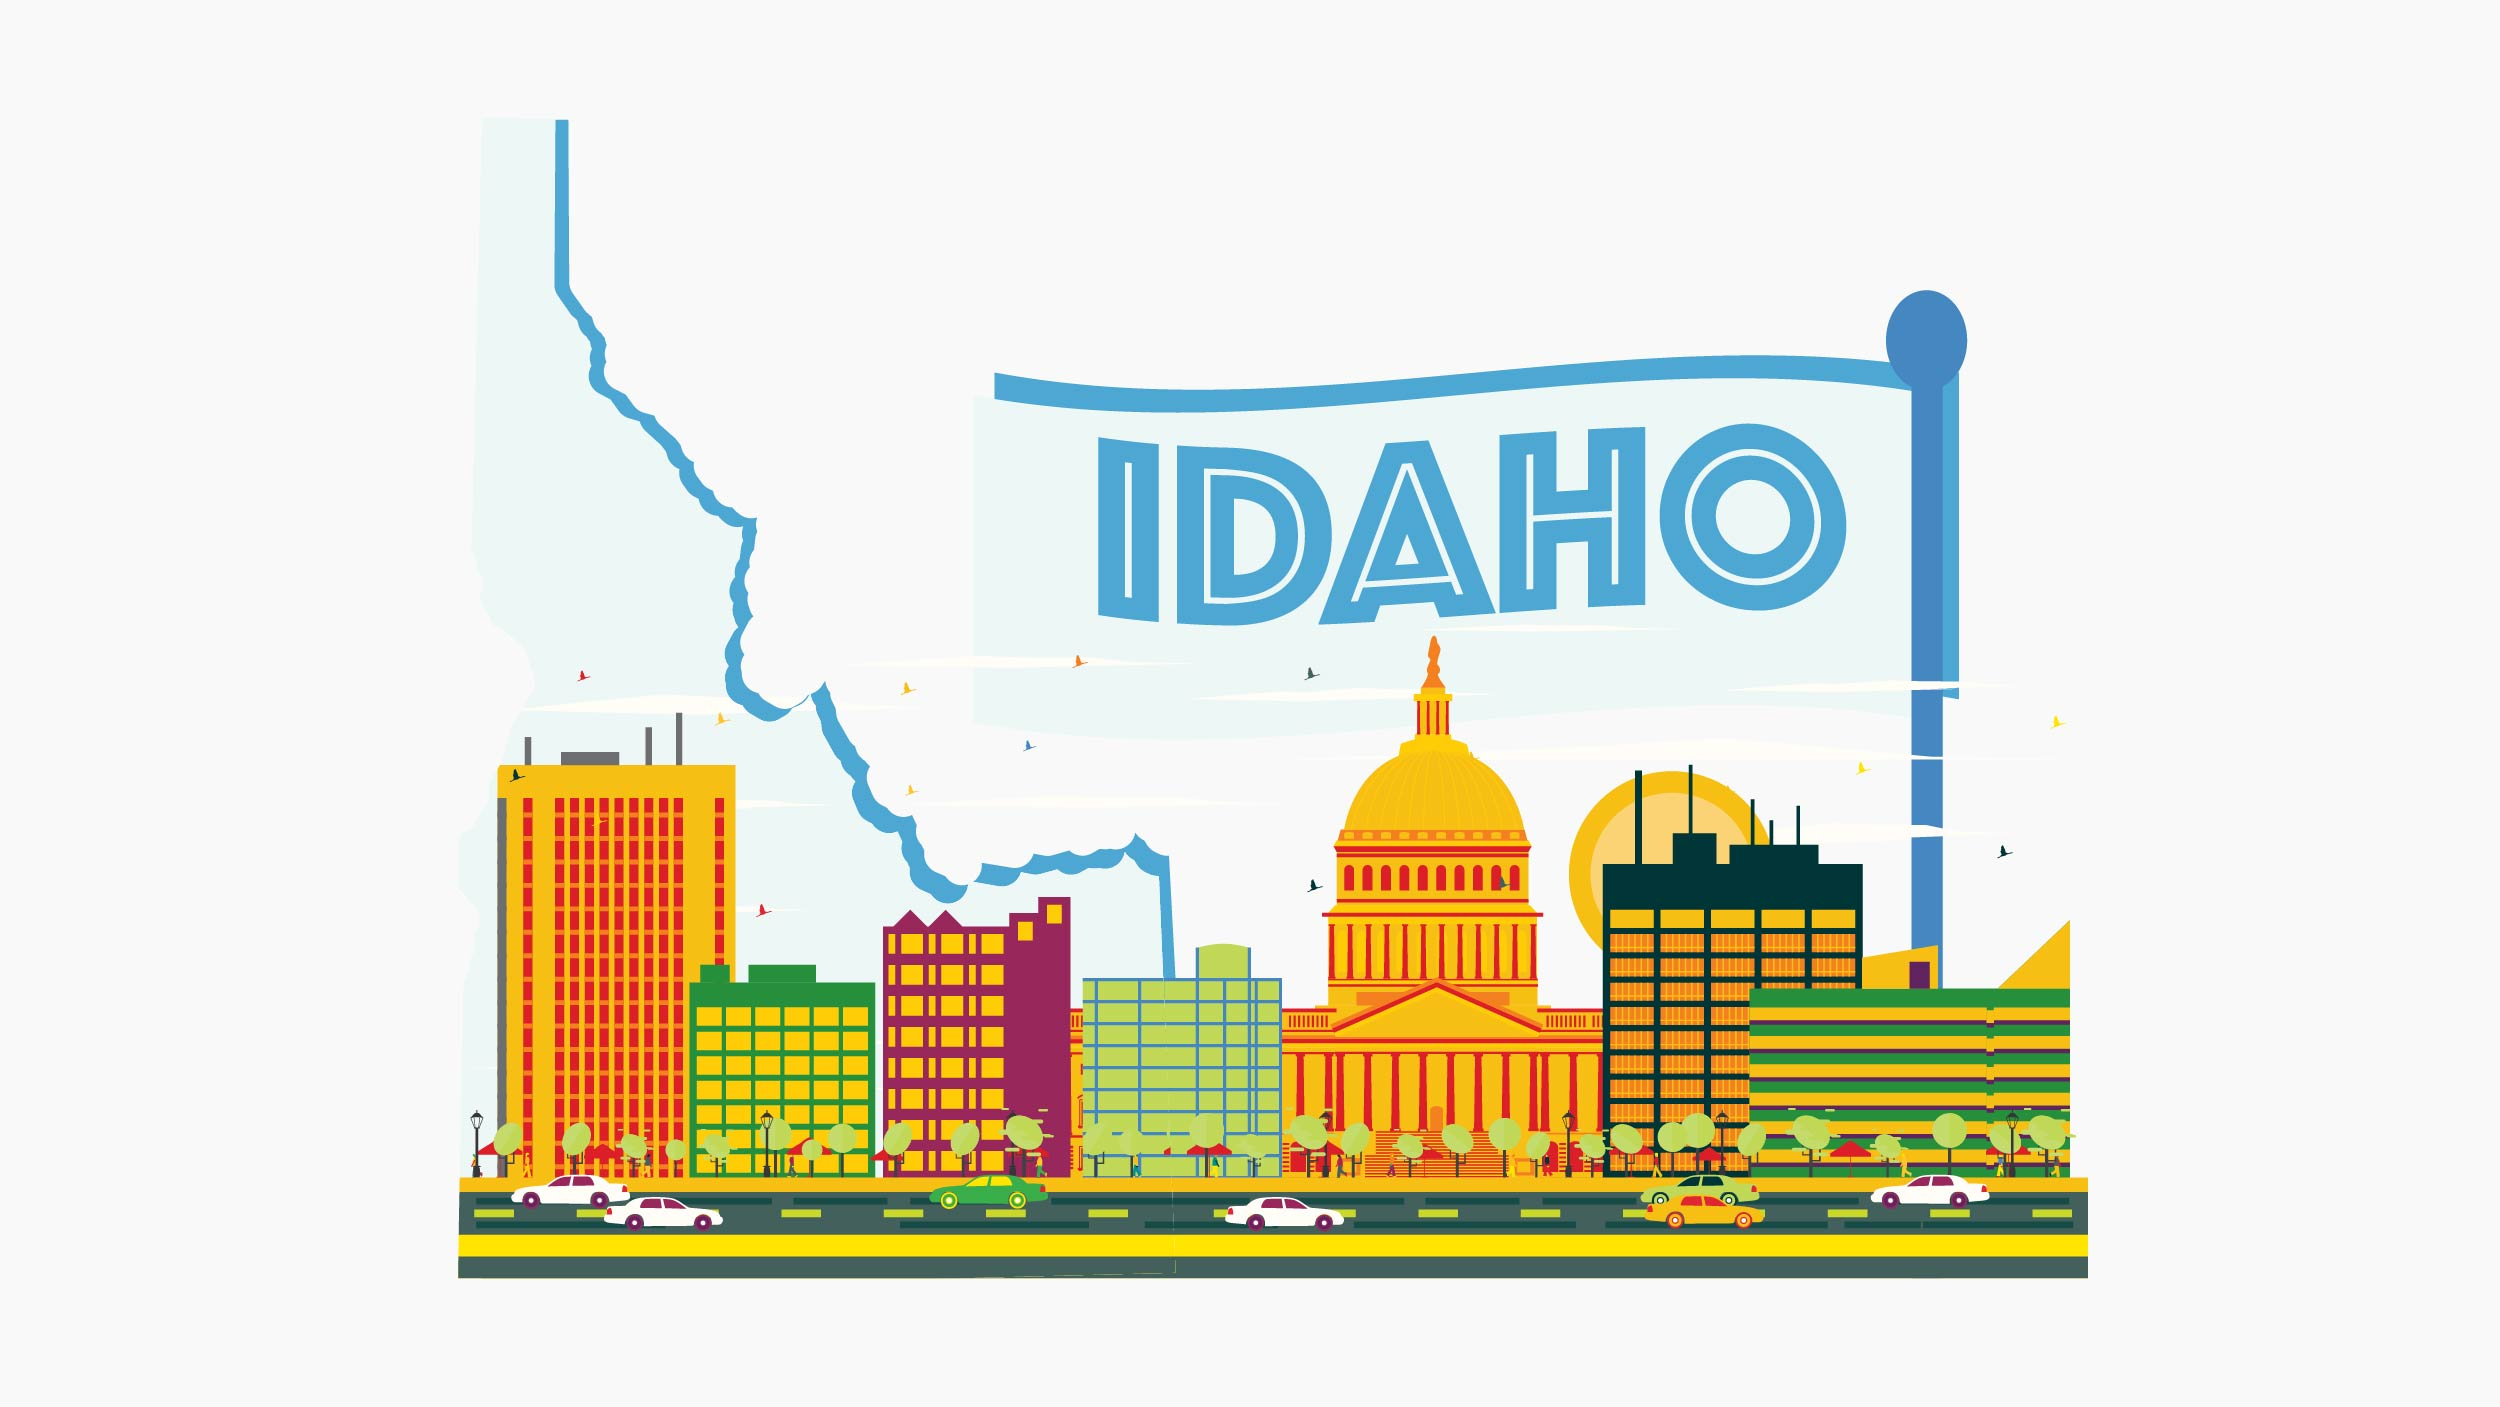 Illustration of Idaho state and city in white background